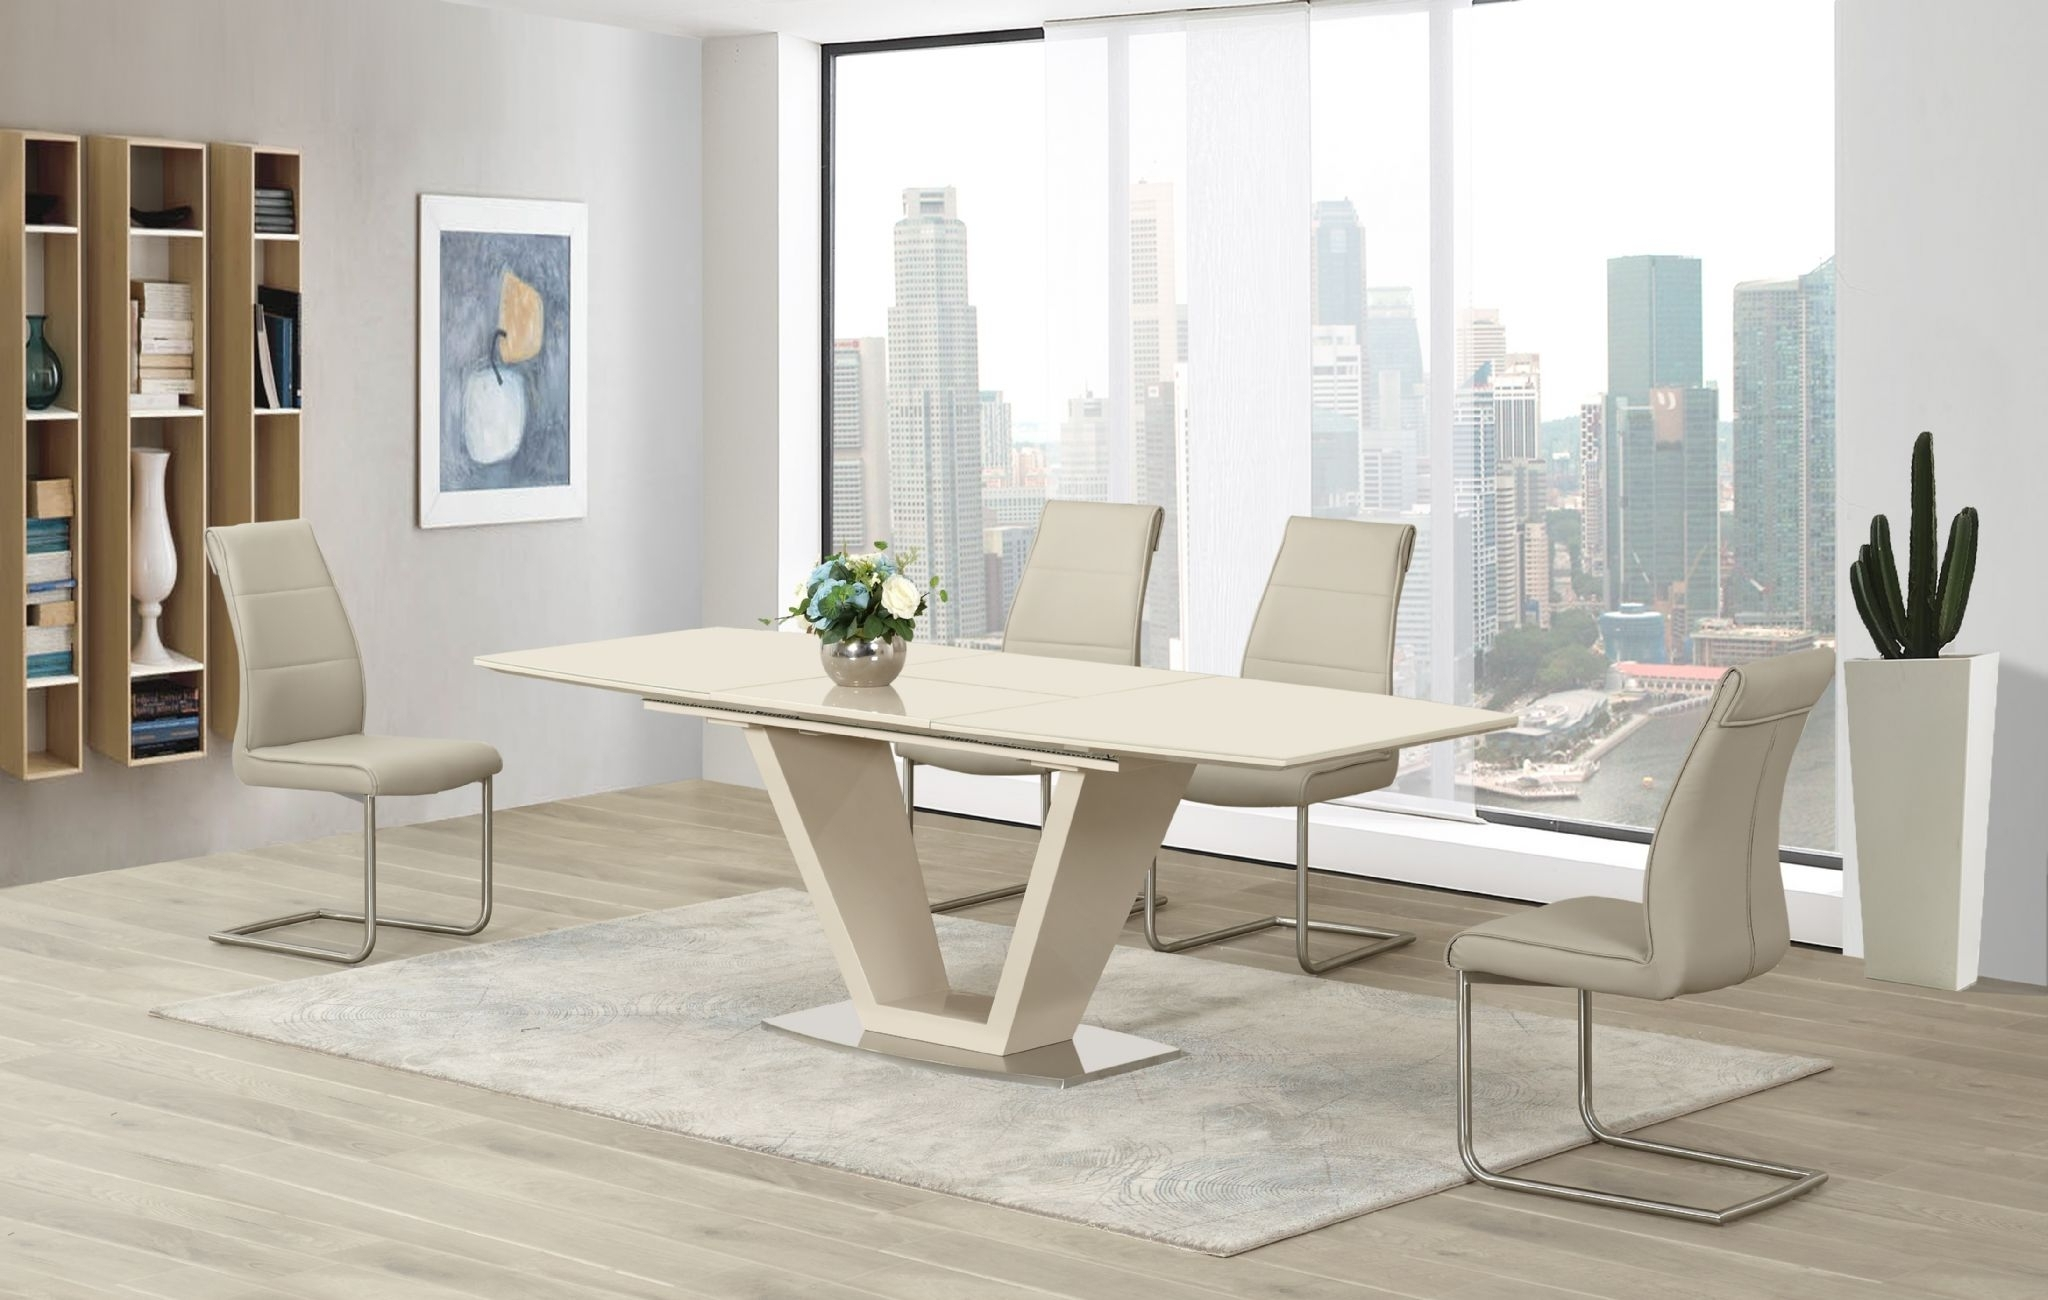 Newest Cream Kitchen Table Chairs • Kitchen Chairs Ideas Within Cream Dining Tables And Chairs (View 8 of 25)